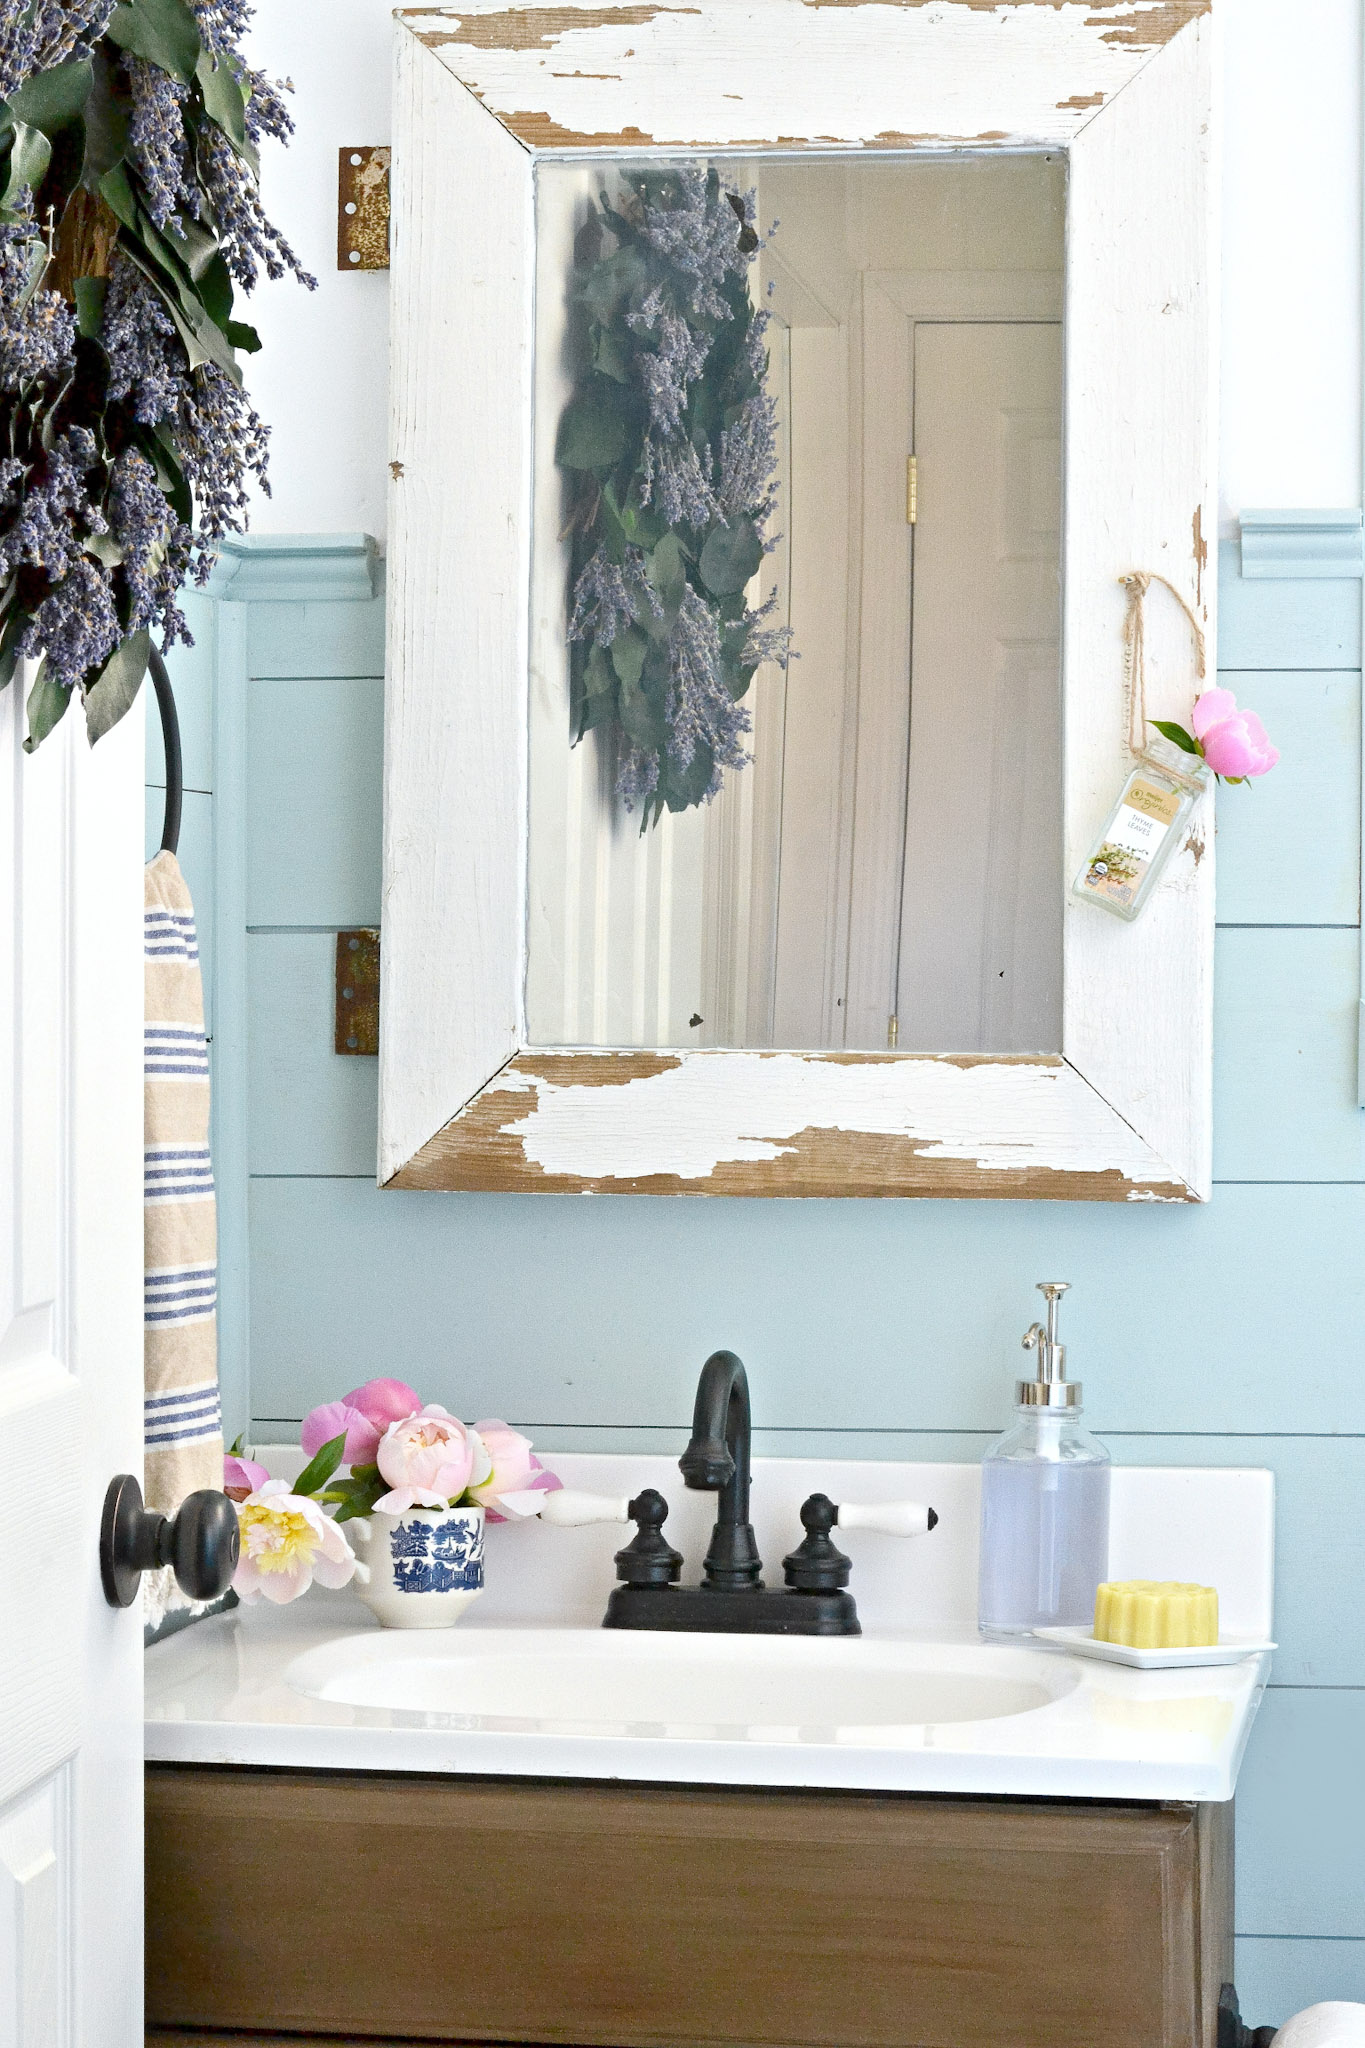 Painted Faucet Tutorial. Learn how to give your bathroom faucet an amazing makeover in 20 minutes without removing it!